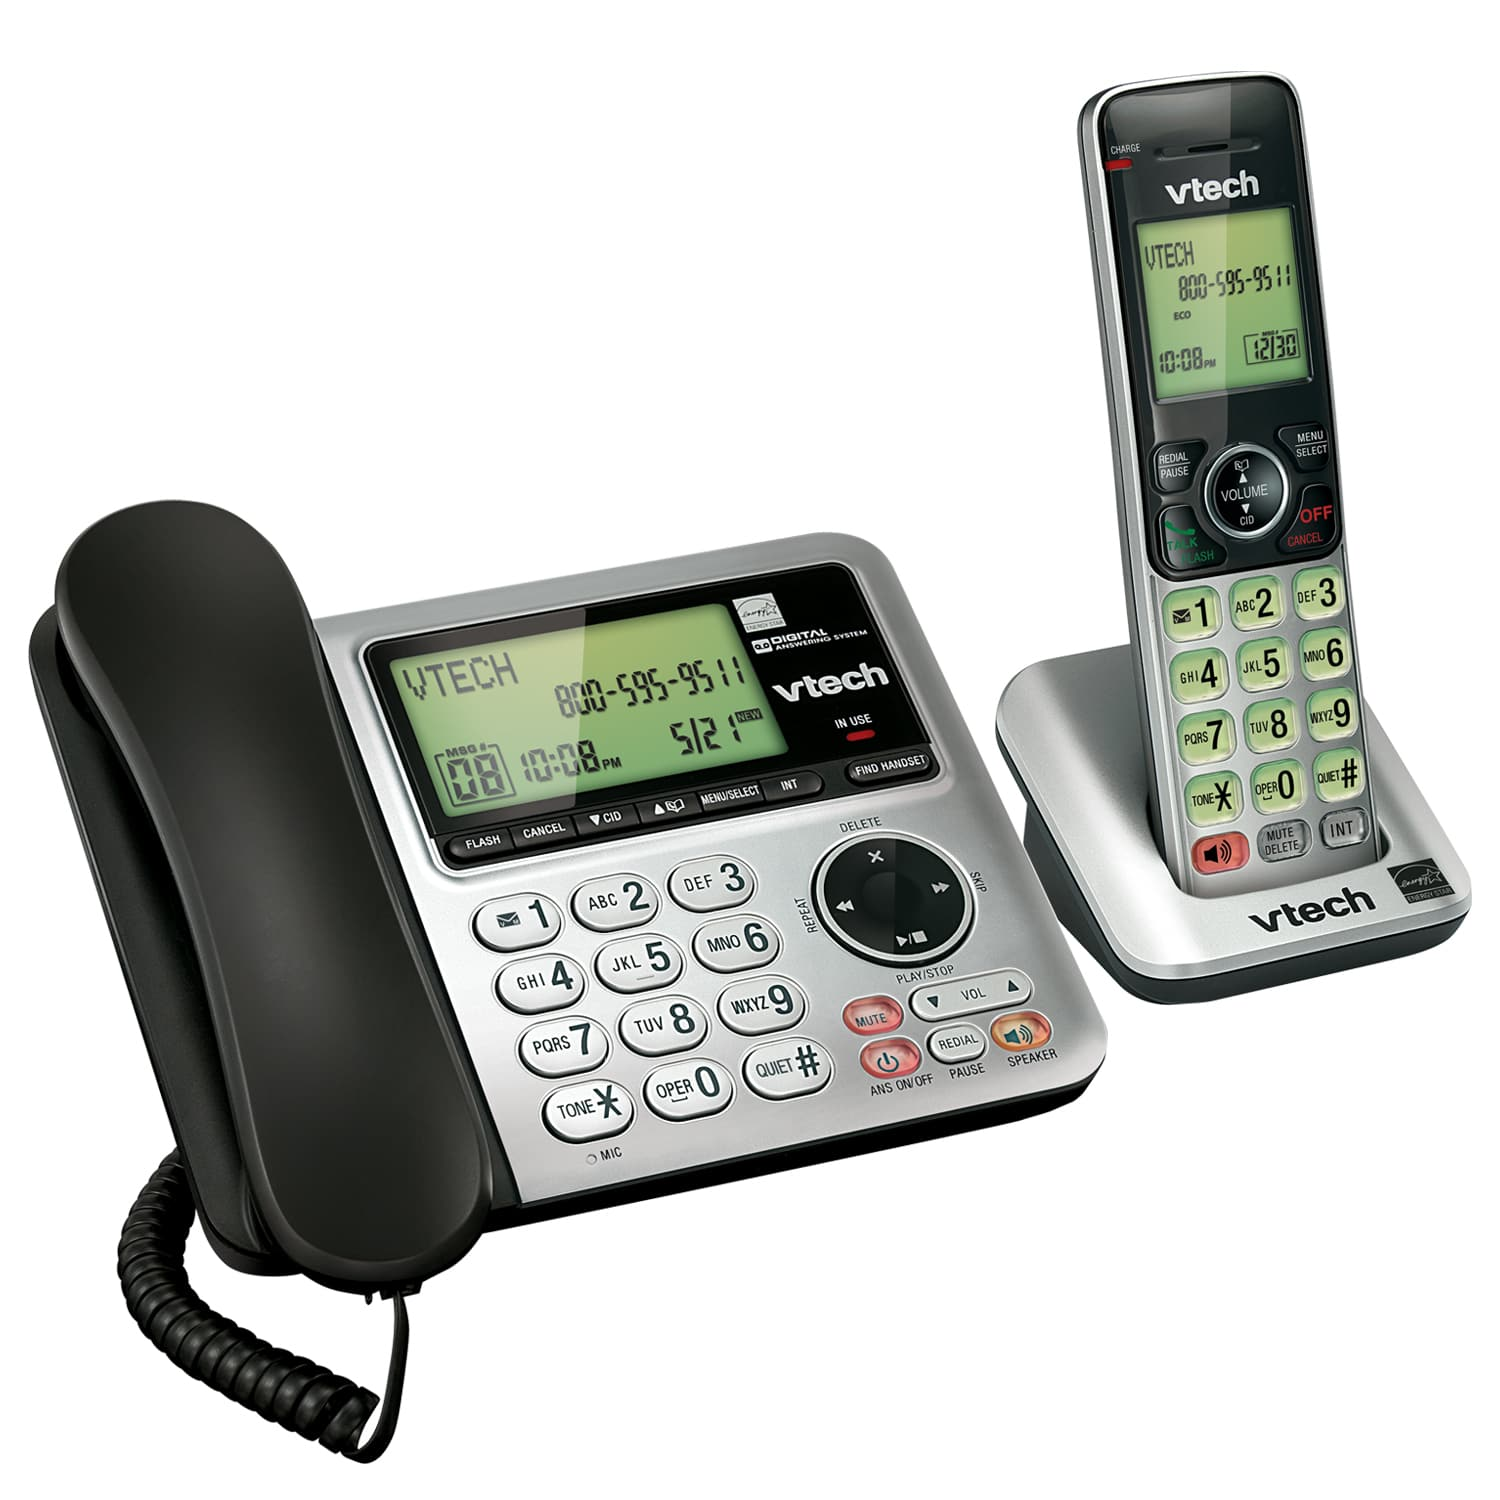 3 Handset Answering System with Caller ID/Call Waiting